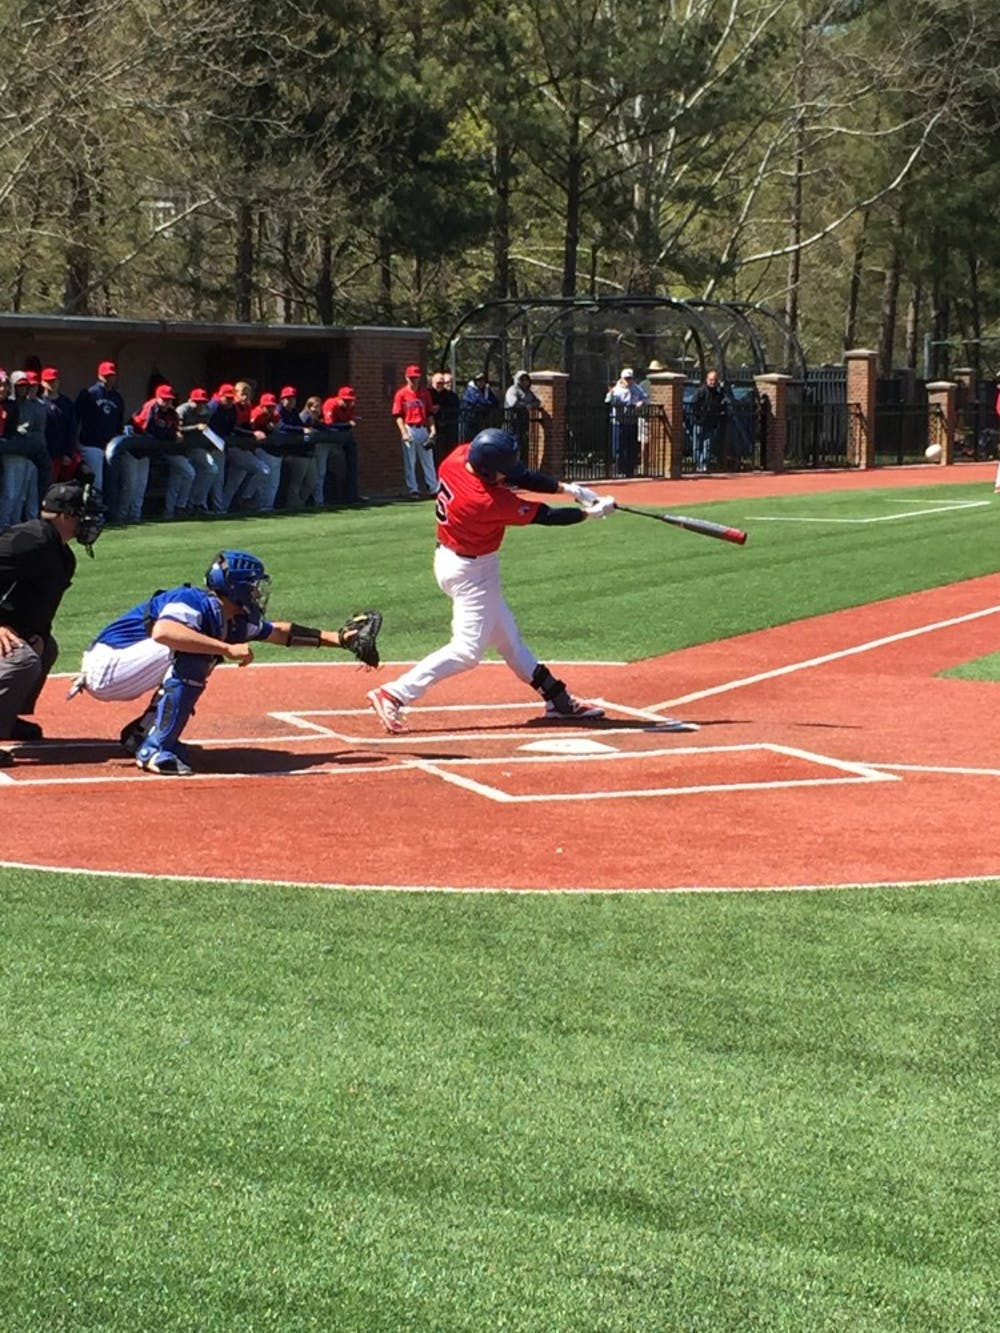 <p>Jansen Fraser swings at what would end up as a double during this weekend's series against Saint Louis.&nbsp;</p>